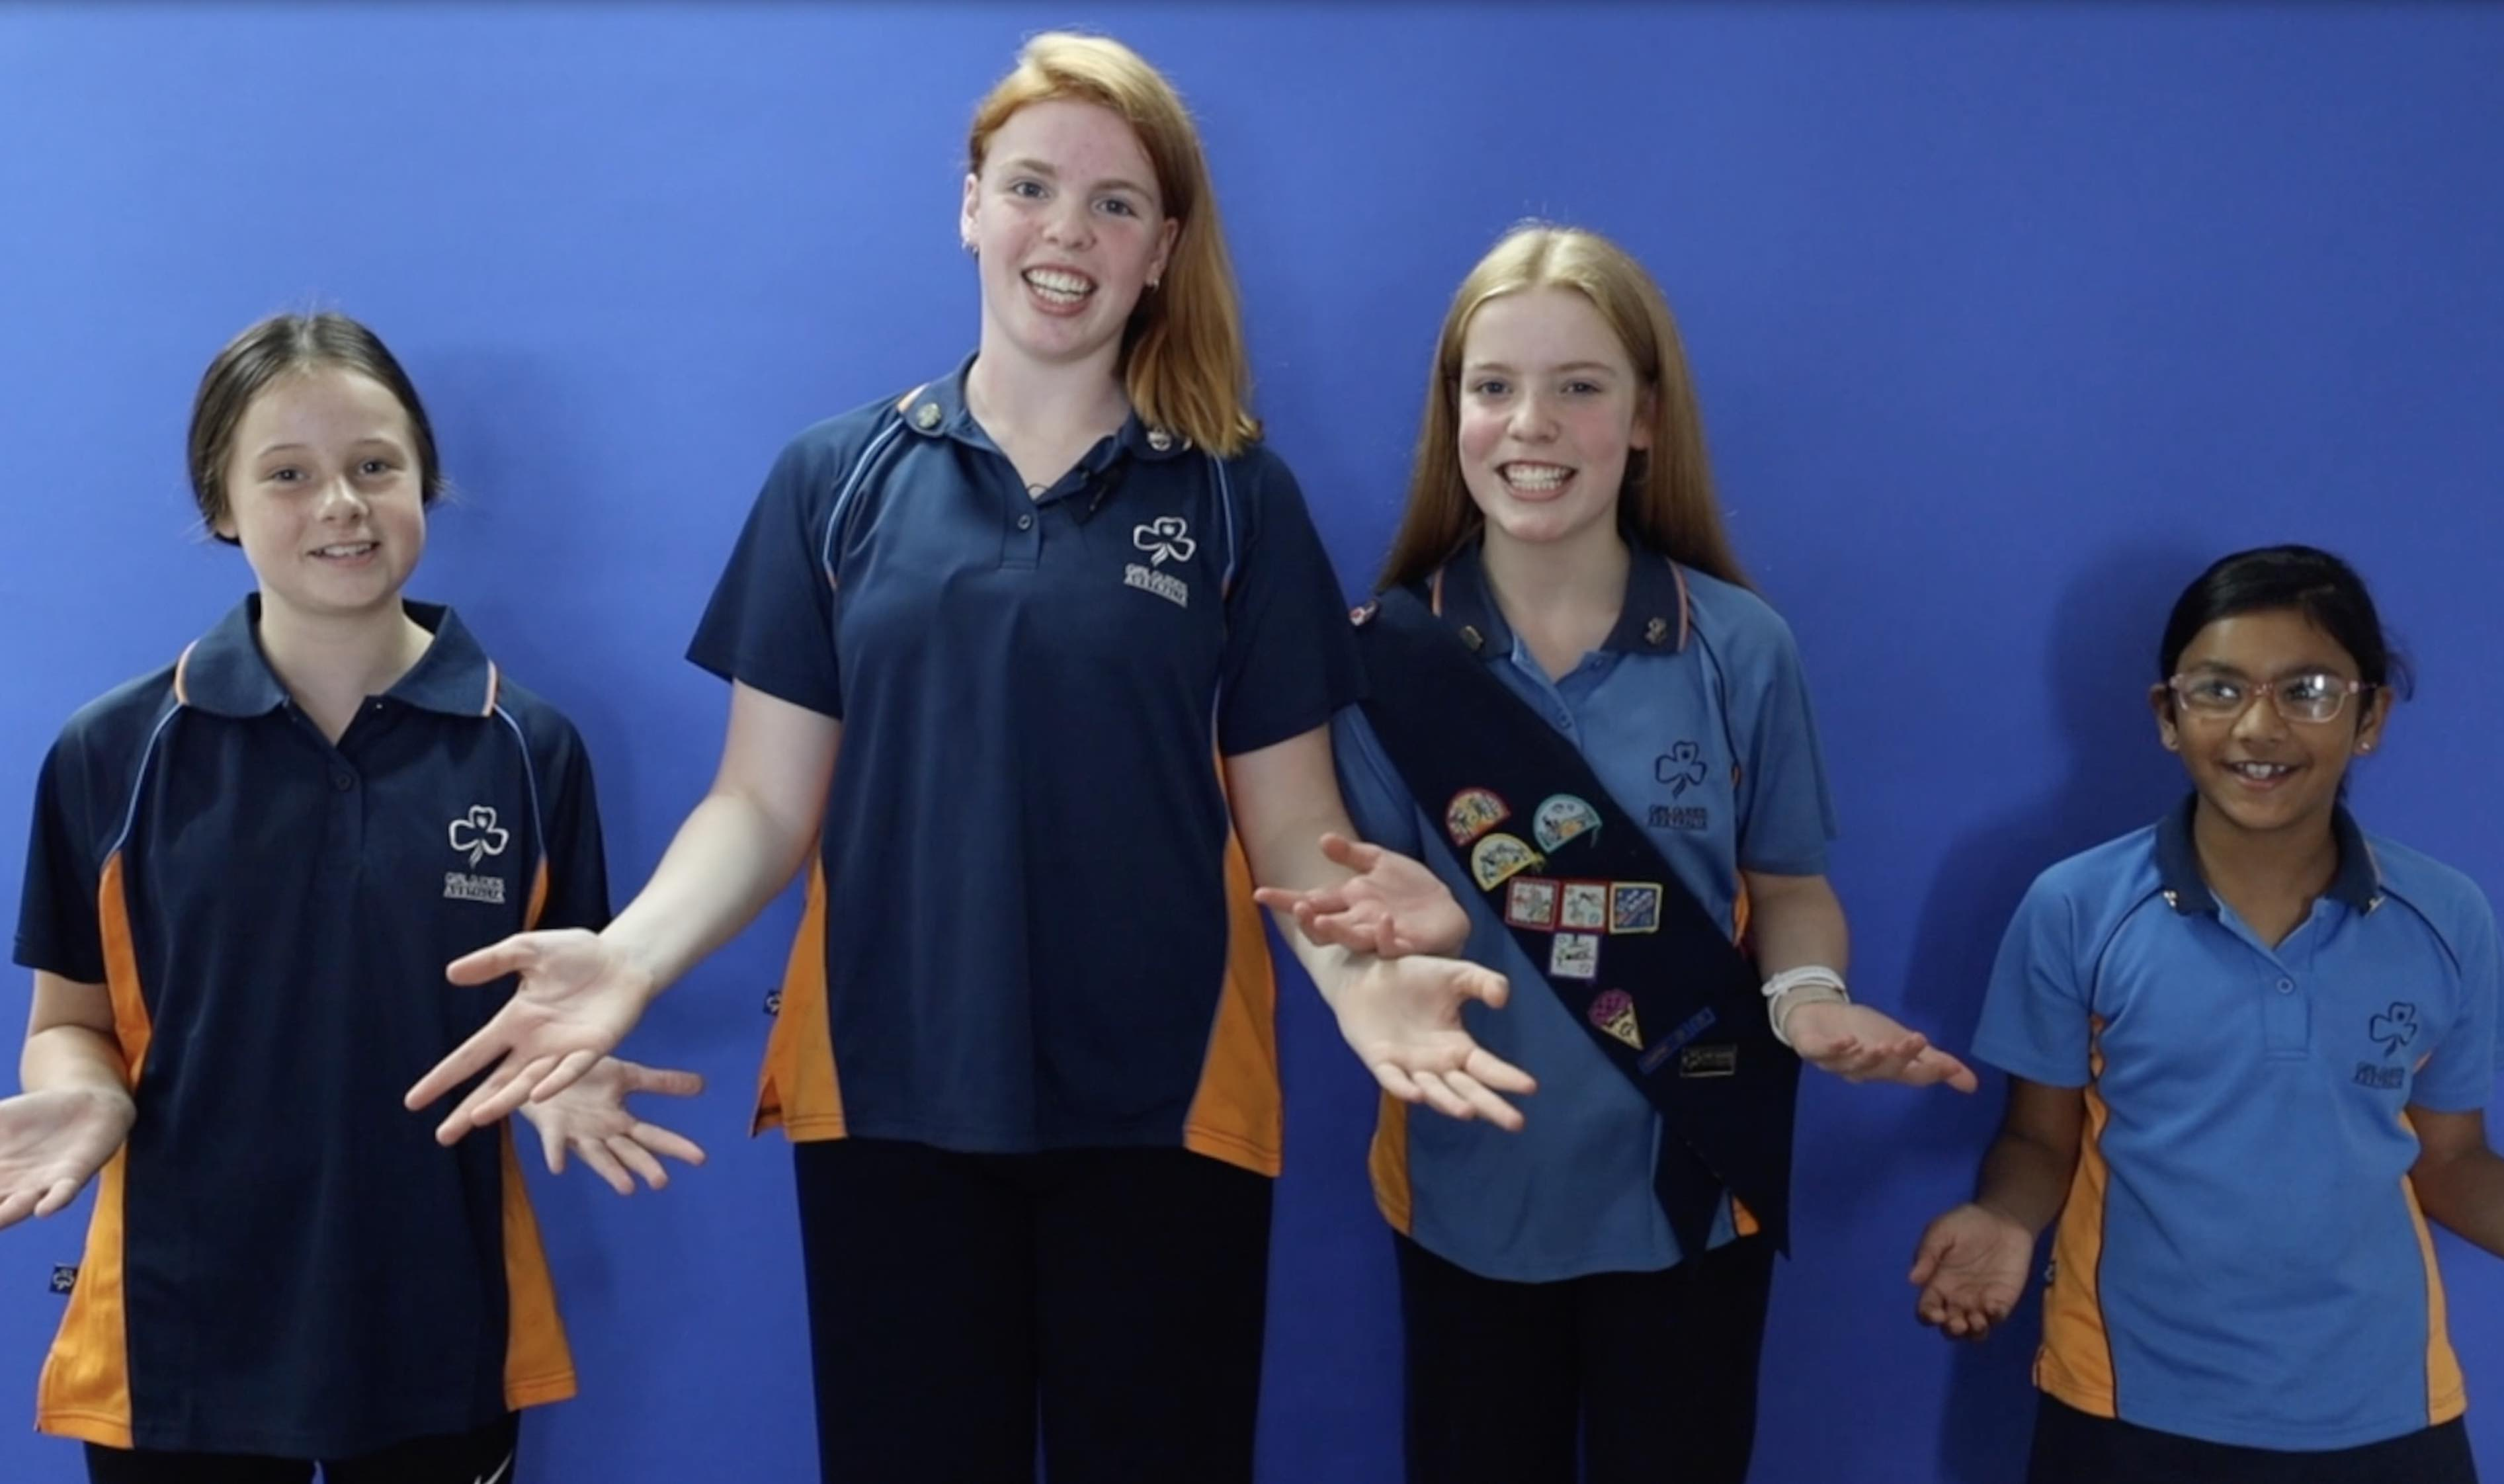 Haystac Melbourne adds clients Bensons Trading and Girl Guides Victoria to its portfolio